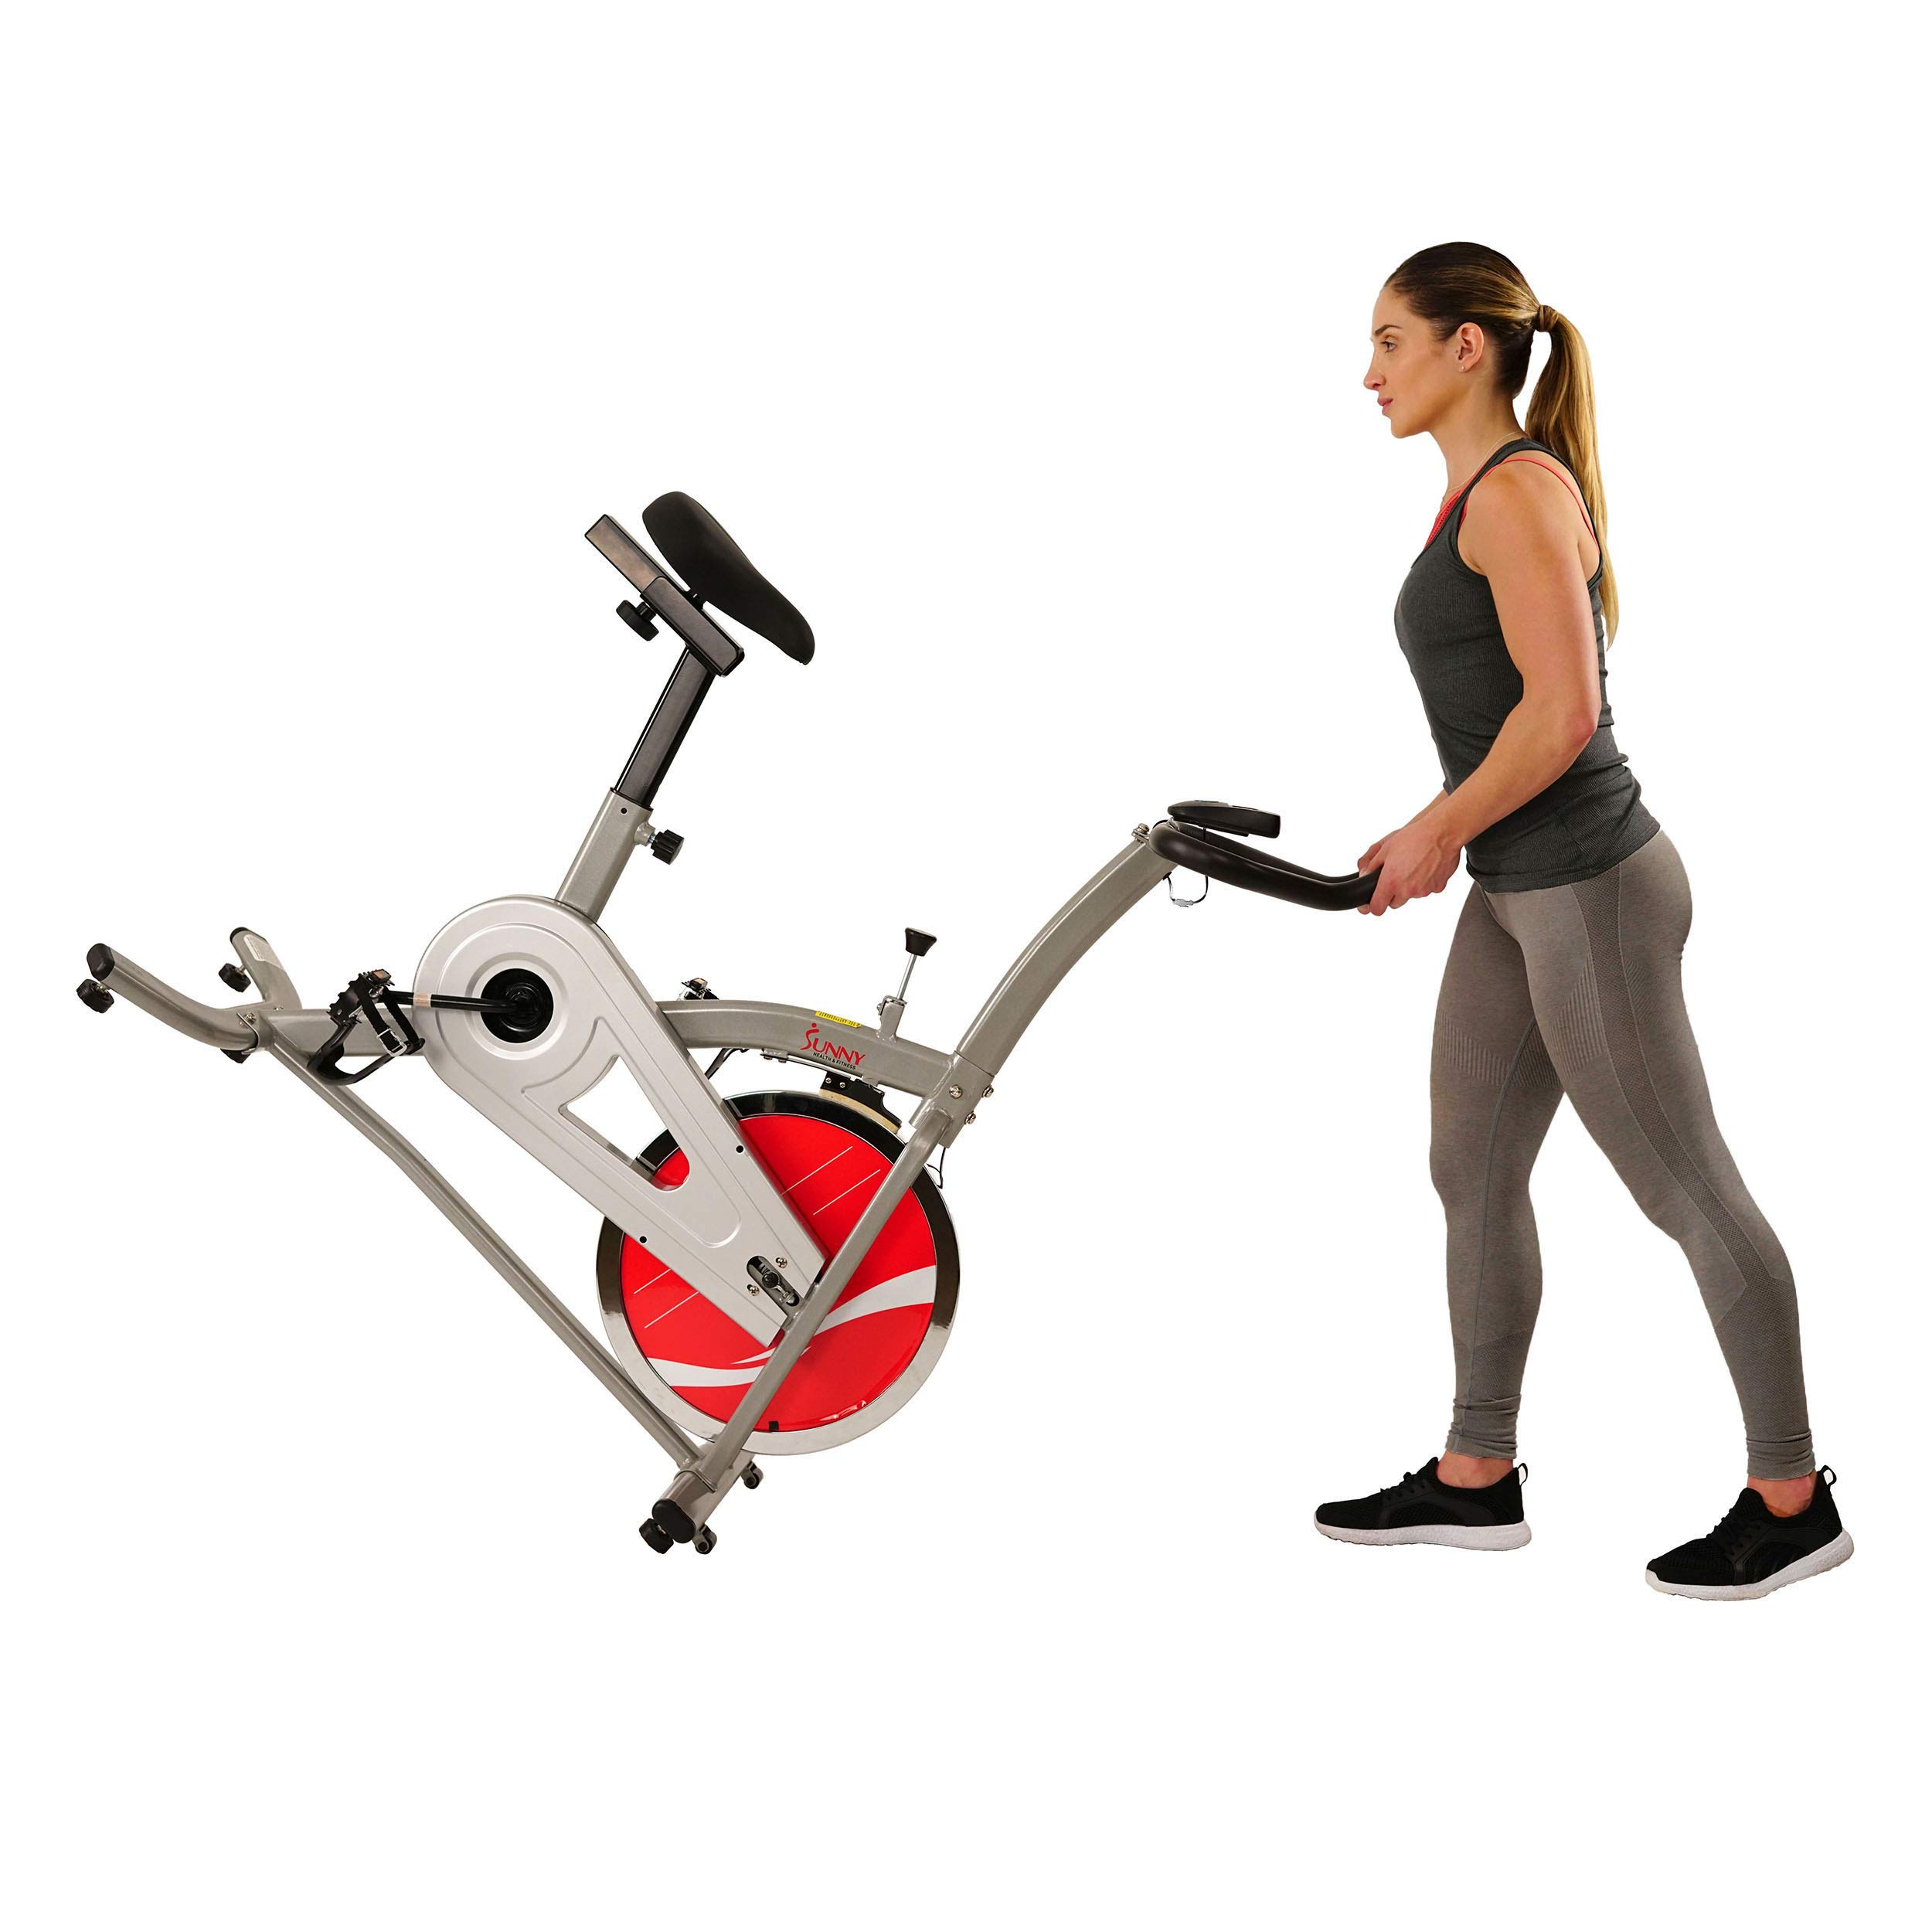 Sunny Health & Fitness Indoor Cycling Exercise Stationary Bike with Monitor and Flywheel Bike - SF-B1203 by Sunny Health & Fitness (Image #8)